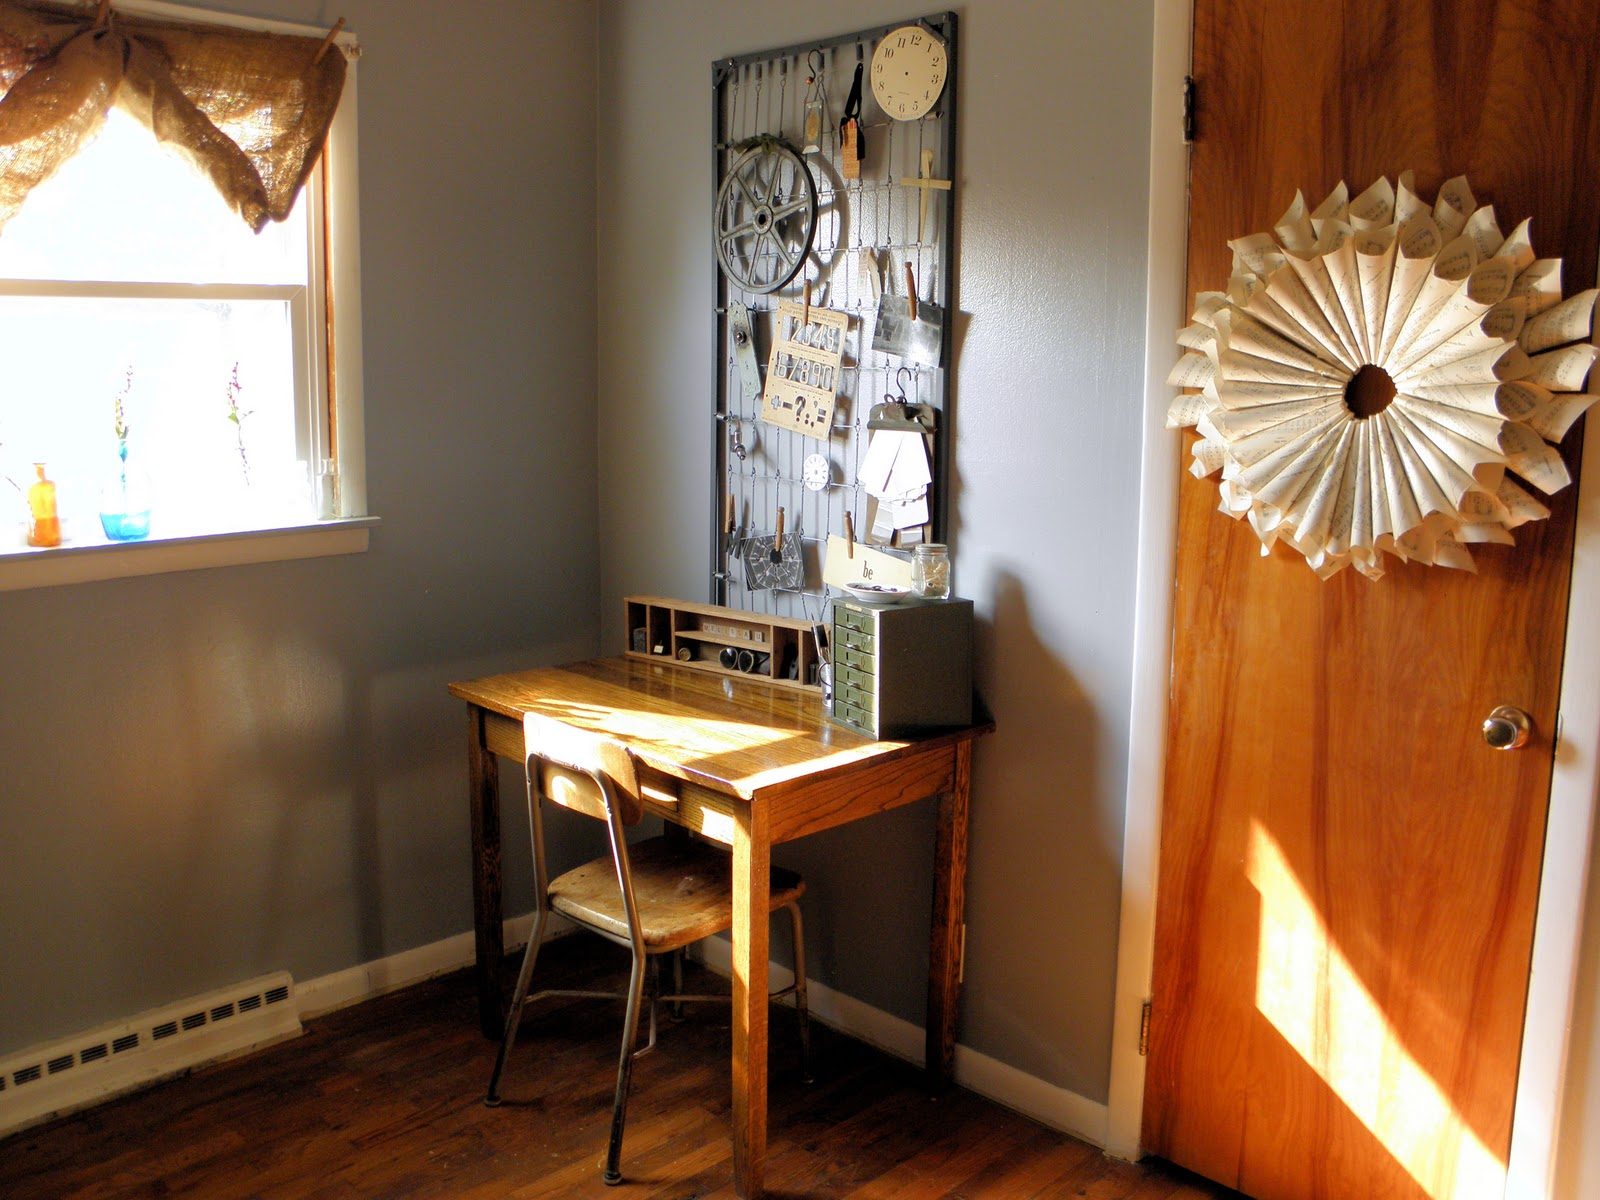 Shabby love: my craft room